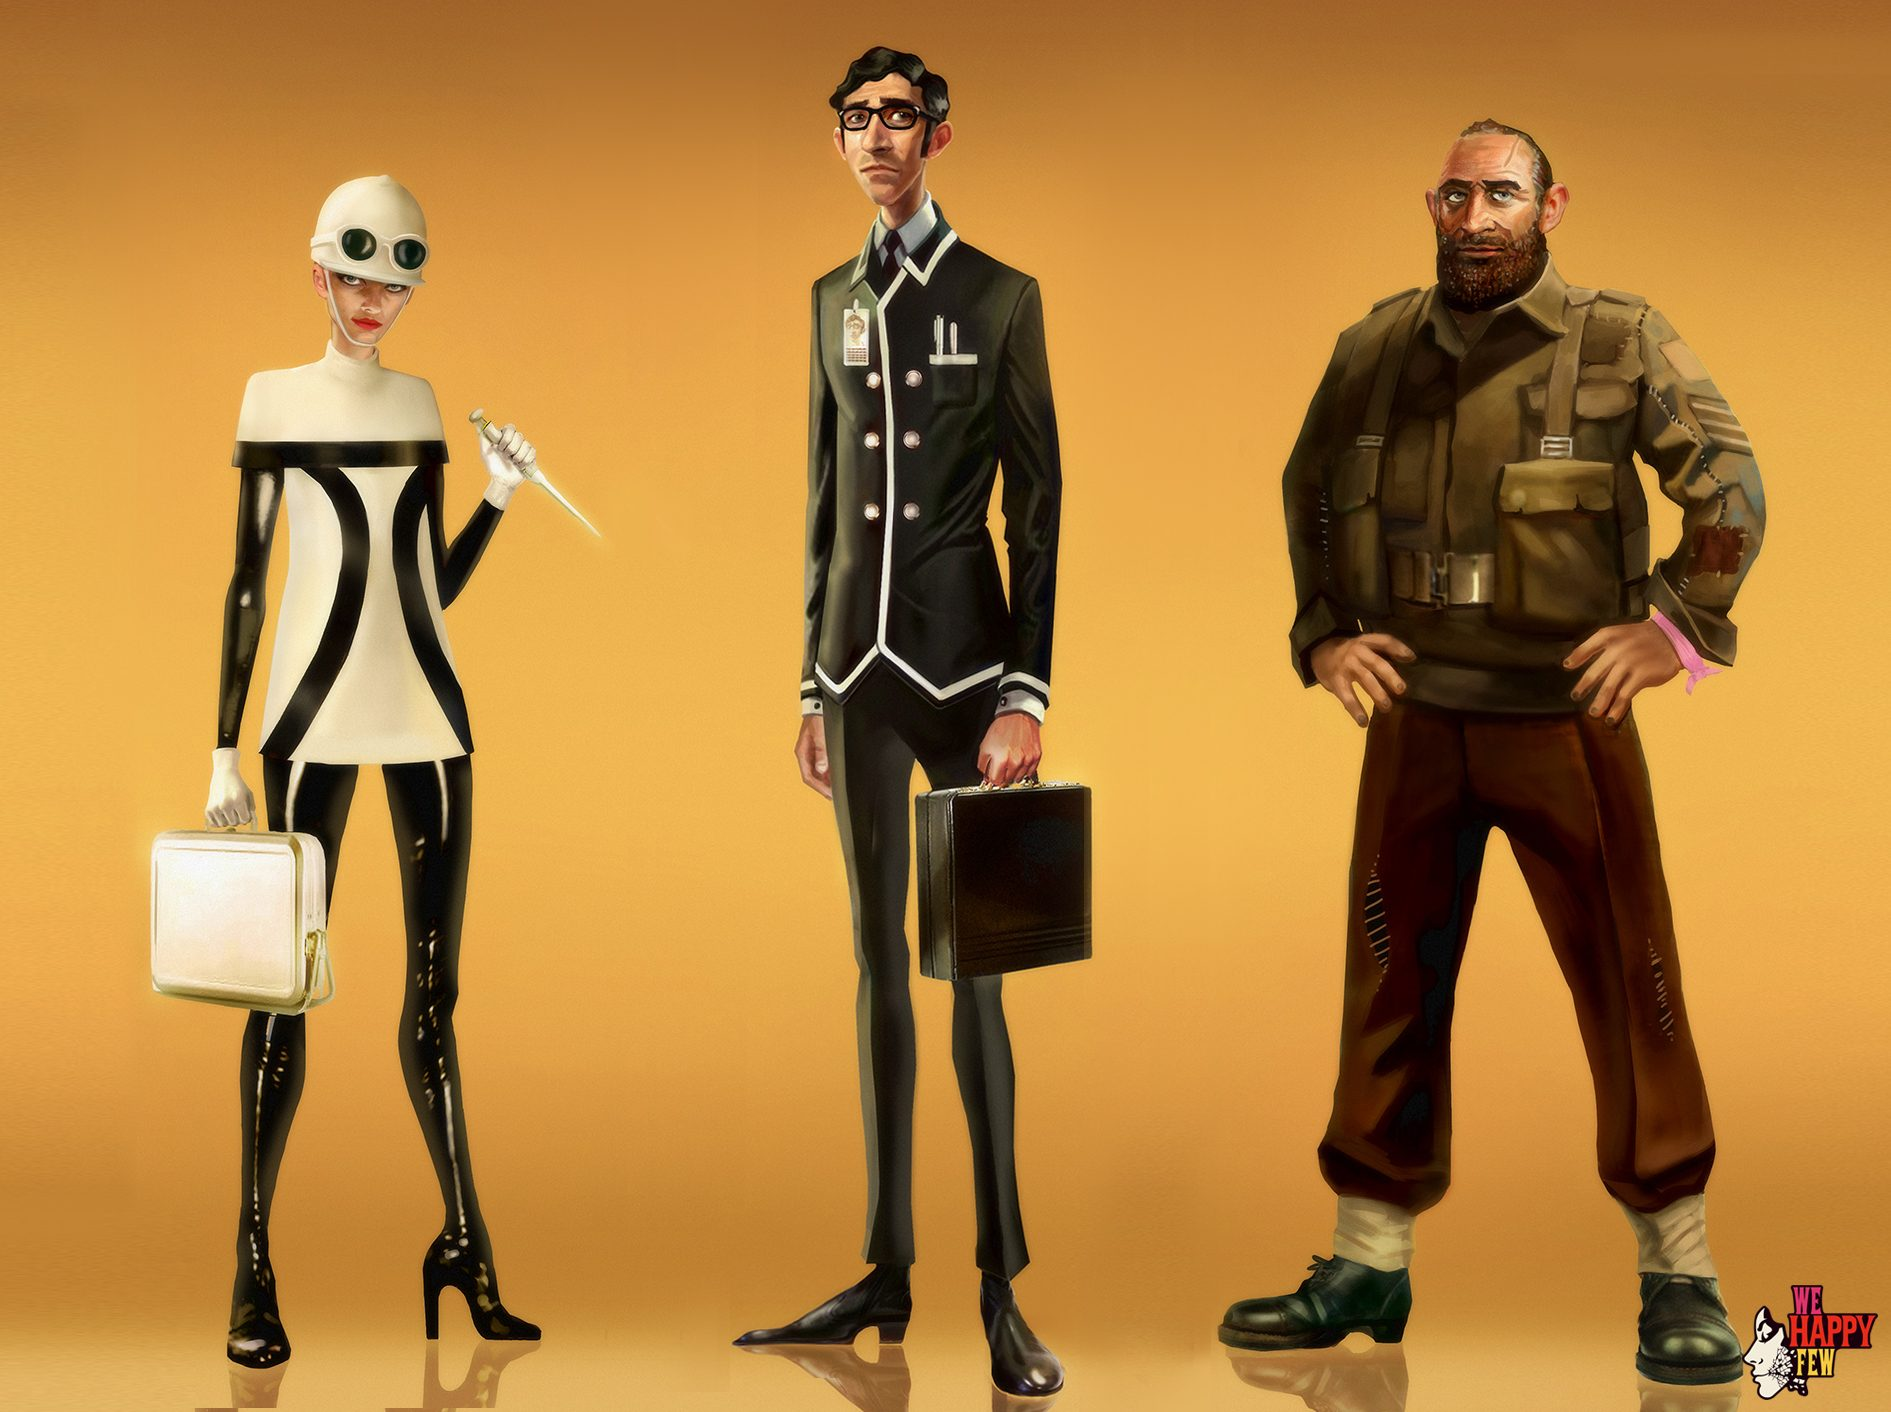 'We Happy Few' Introduces its Player Characters in a New Trailer